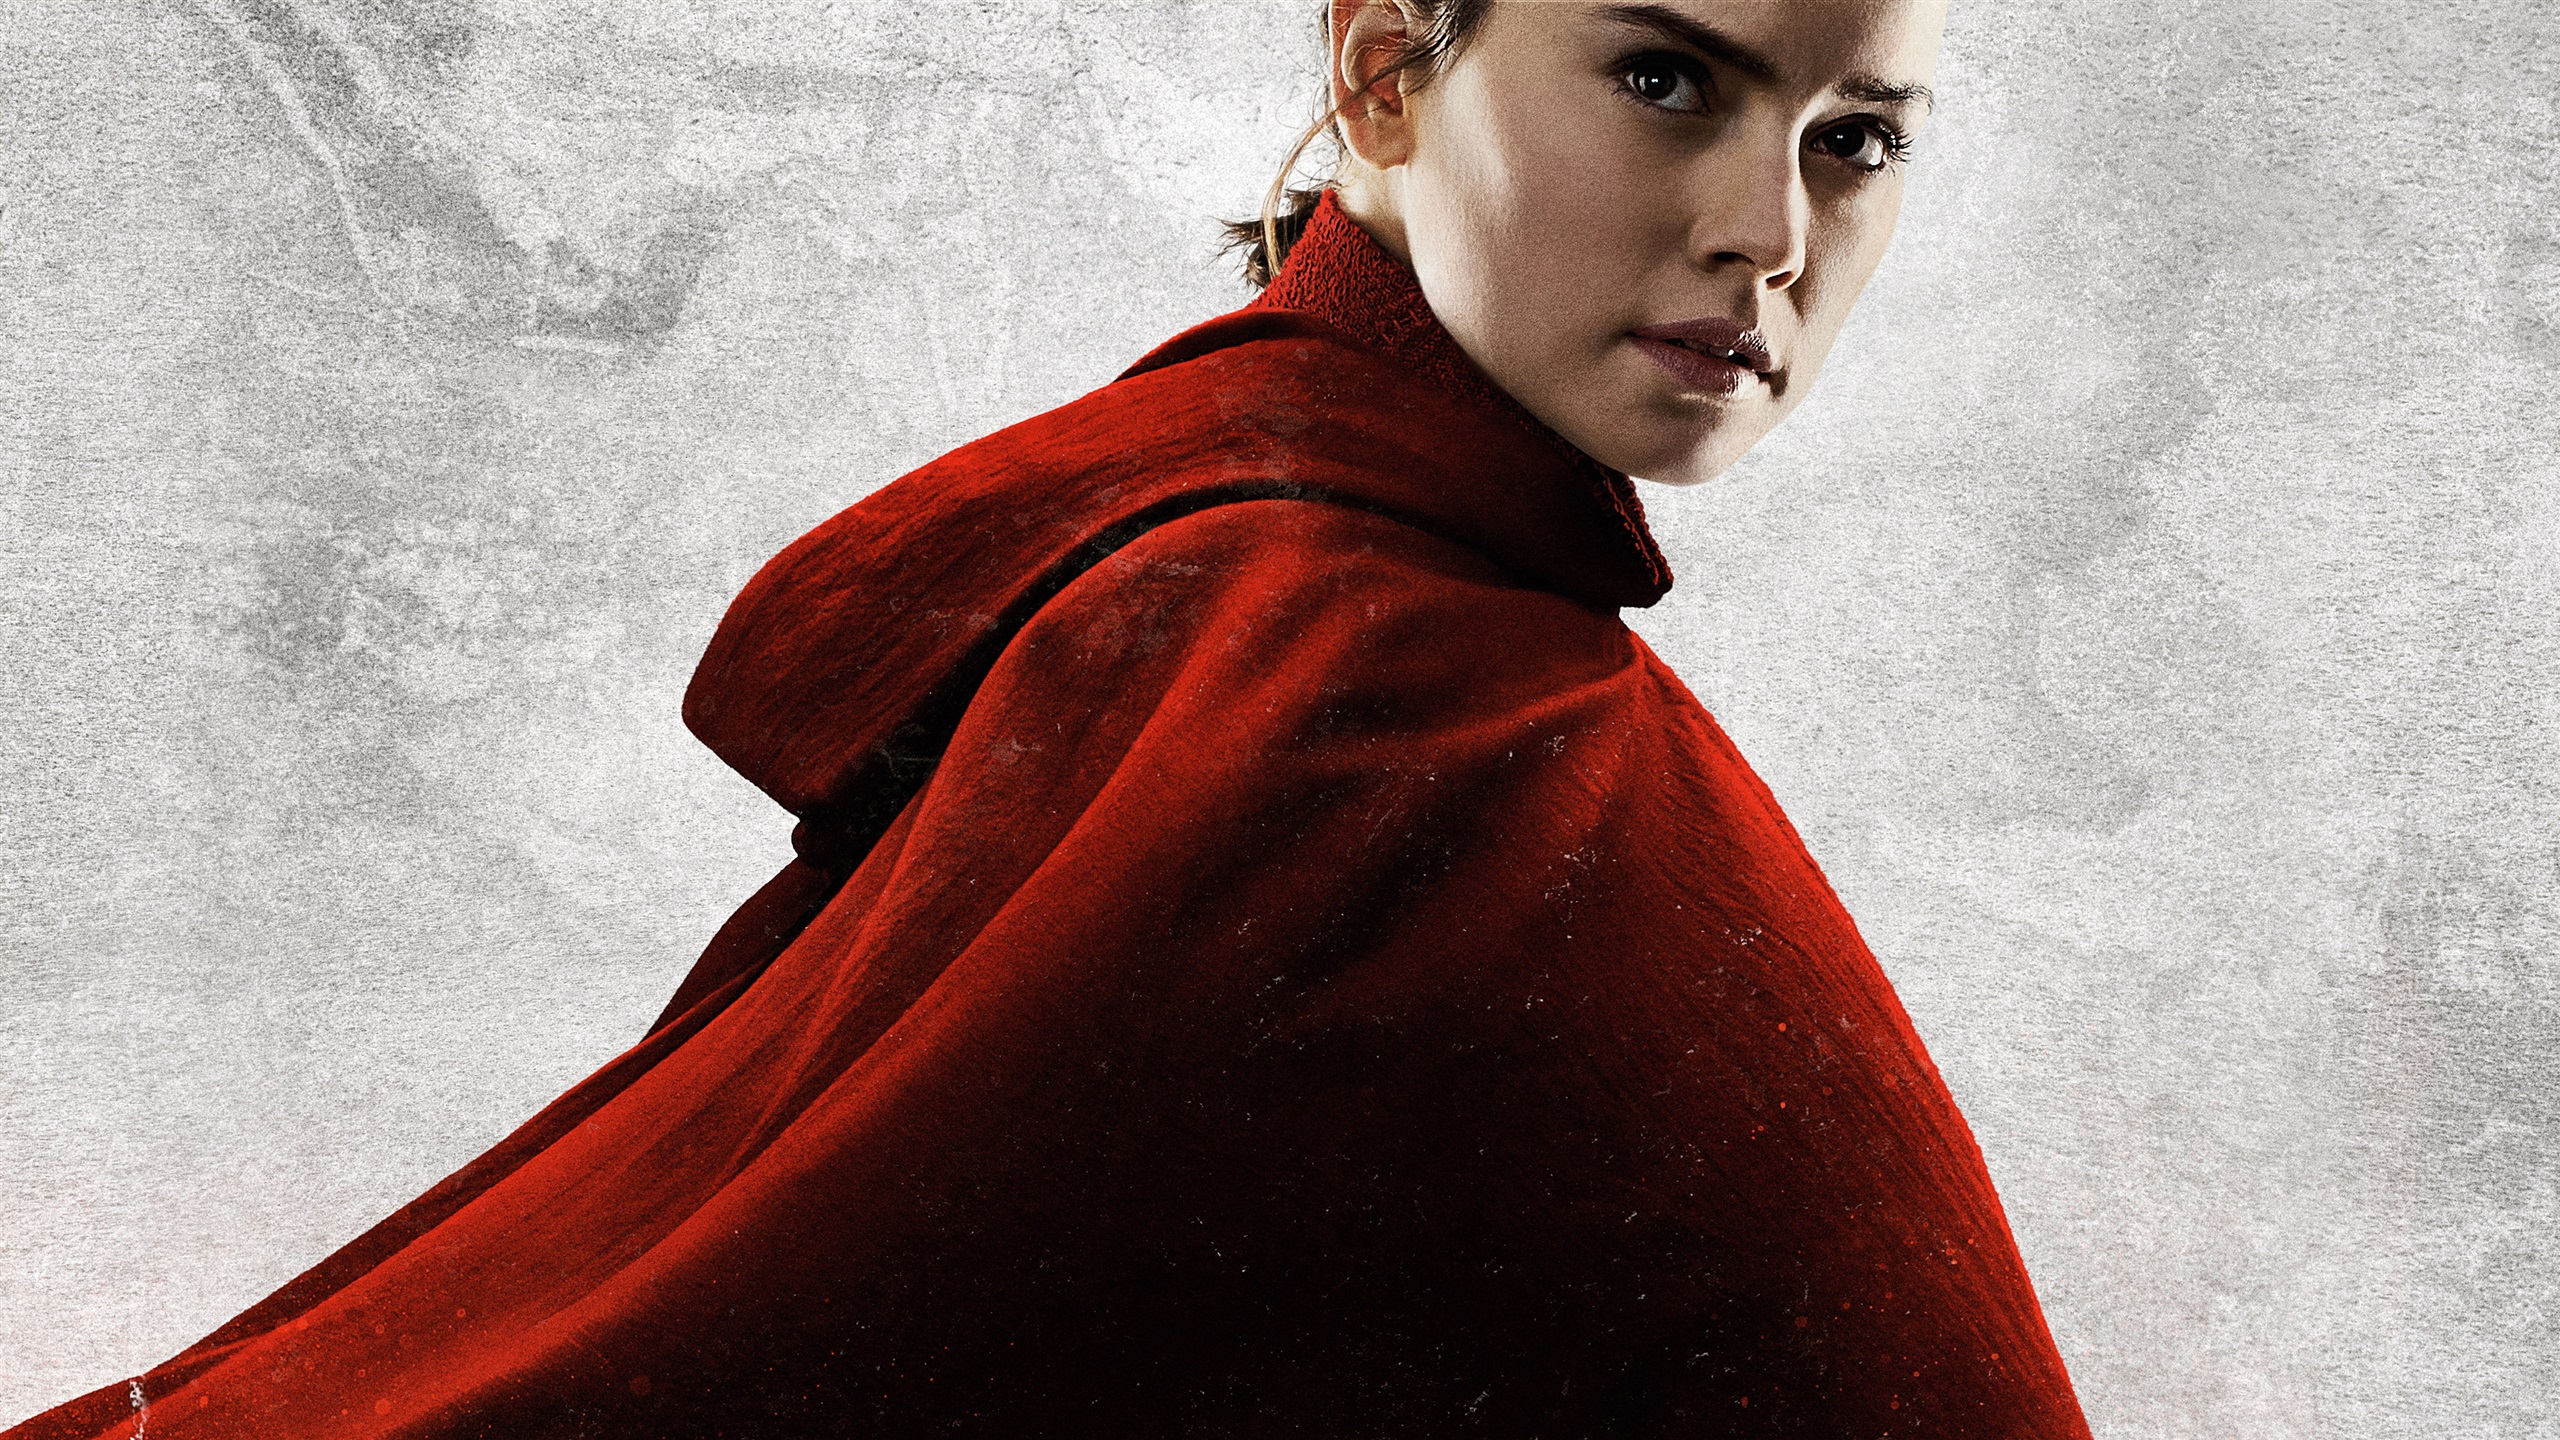 Wallpaper Daisy Ridley Star Wars The Last Jedi 3840x2160 Uhd 4k Picture Image